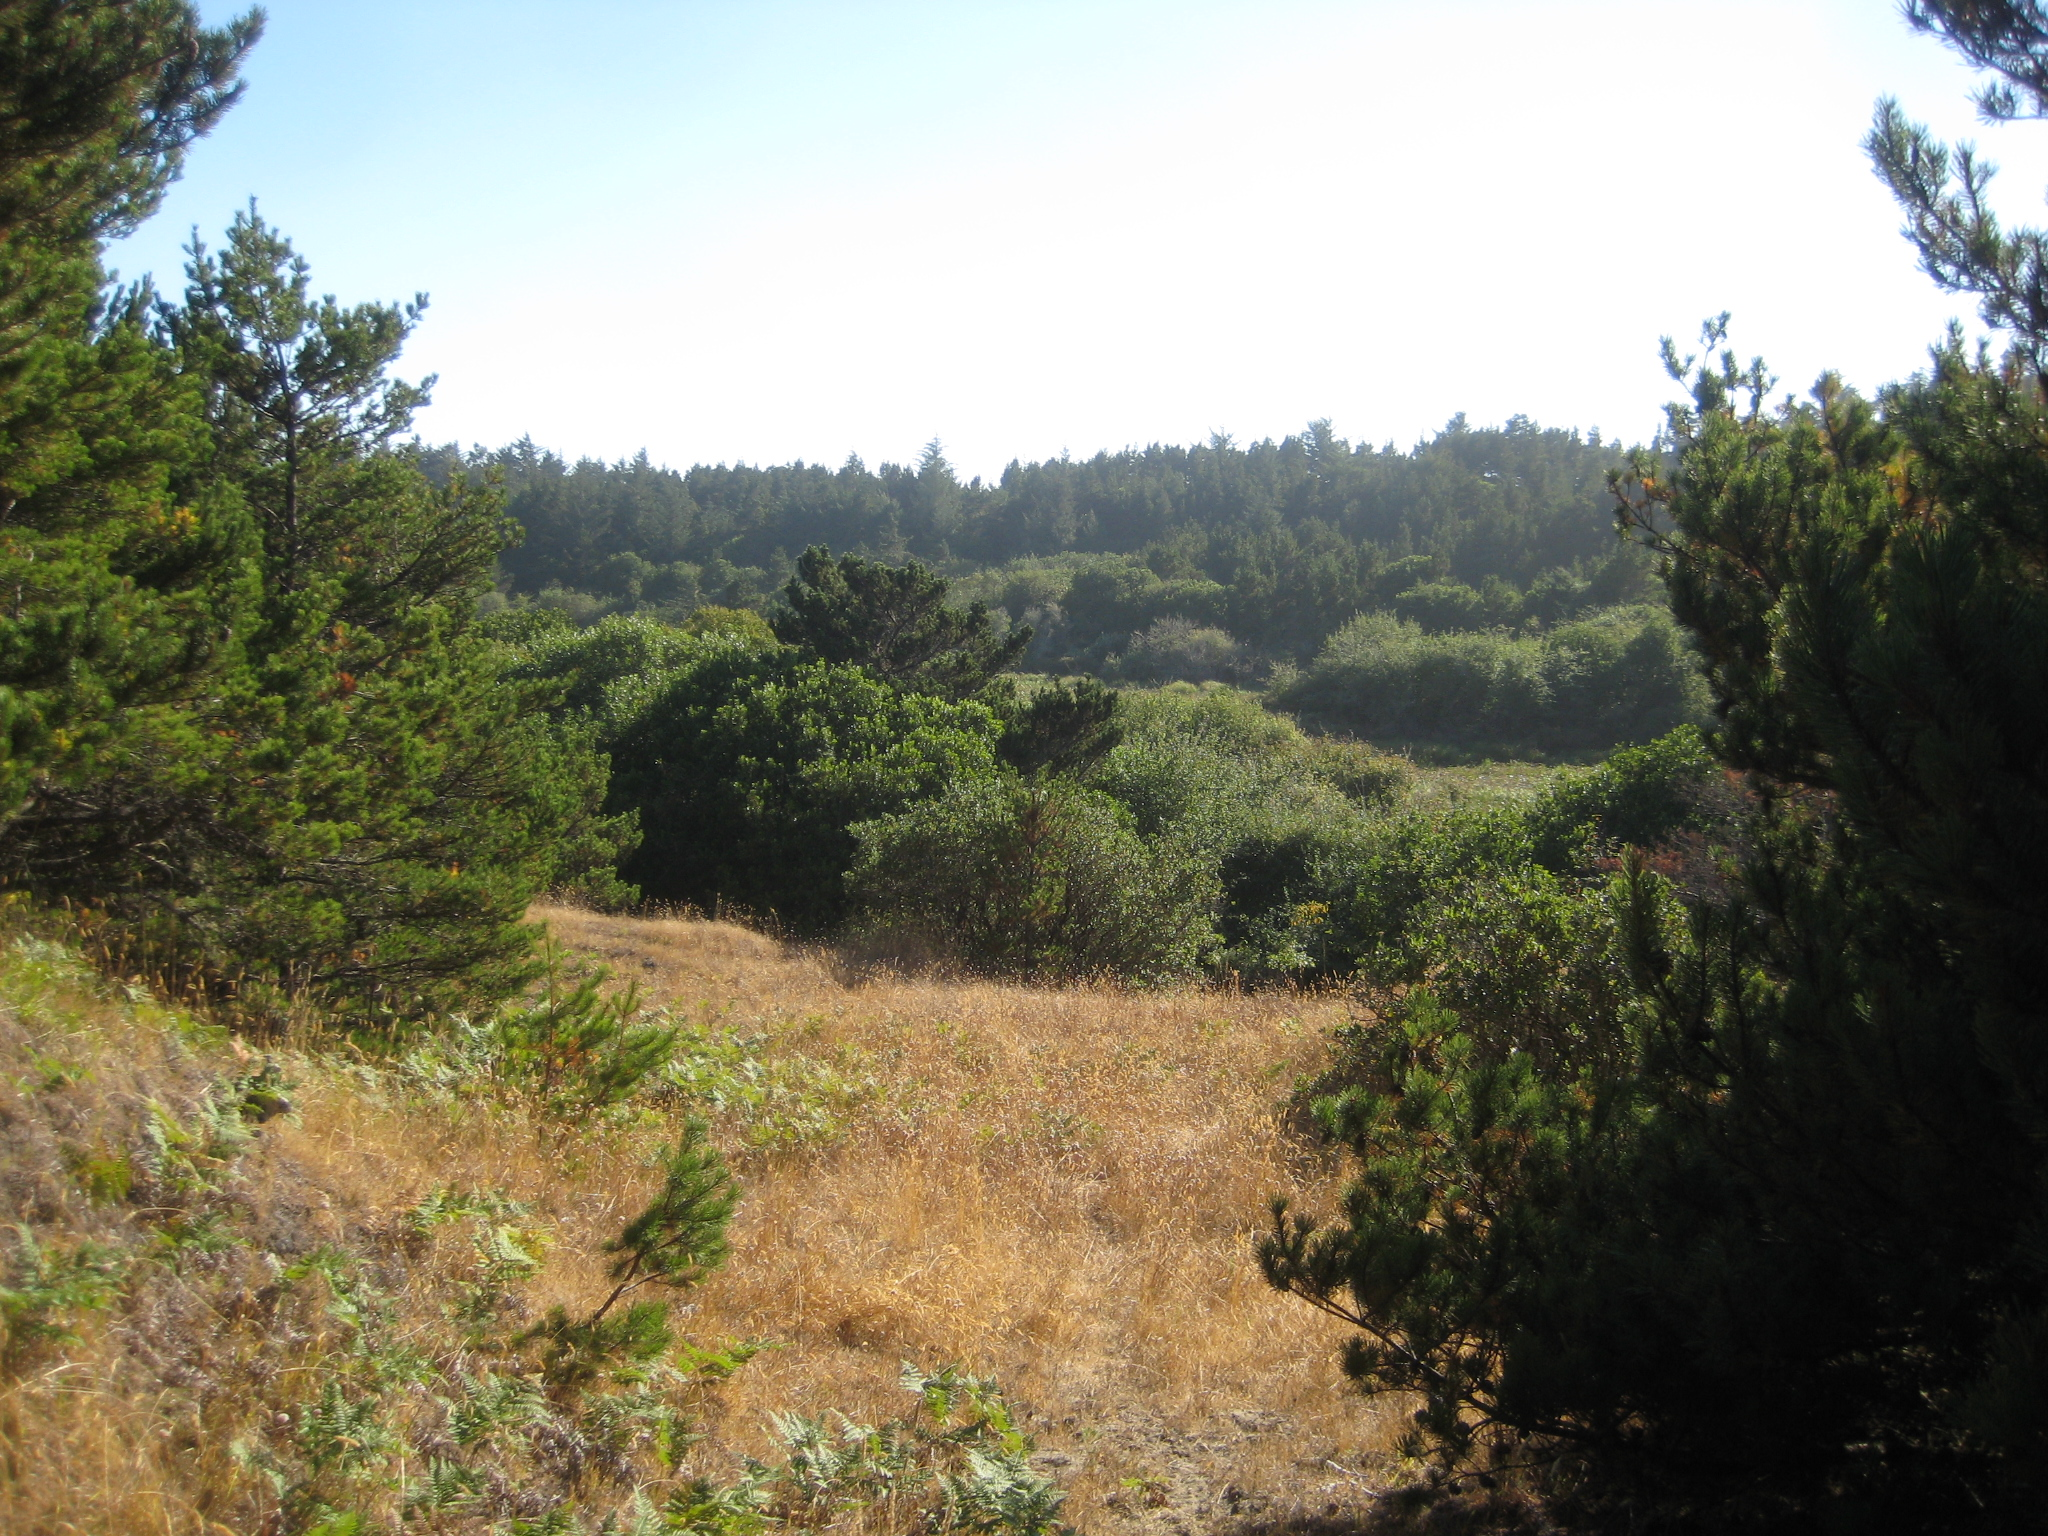 Image from Tolowa Dunes SP